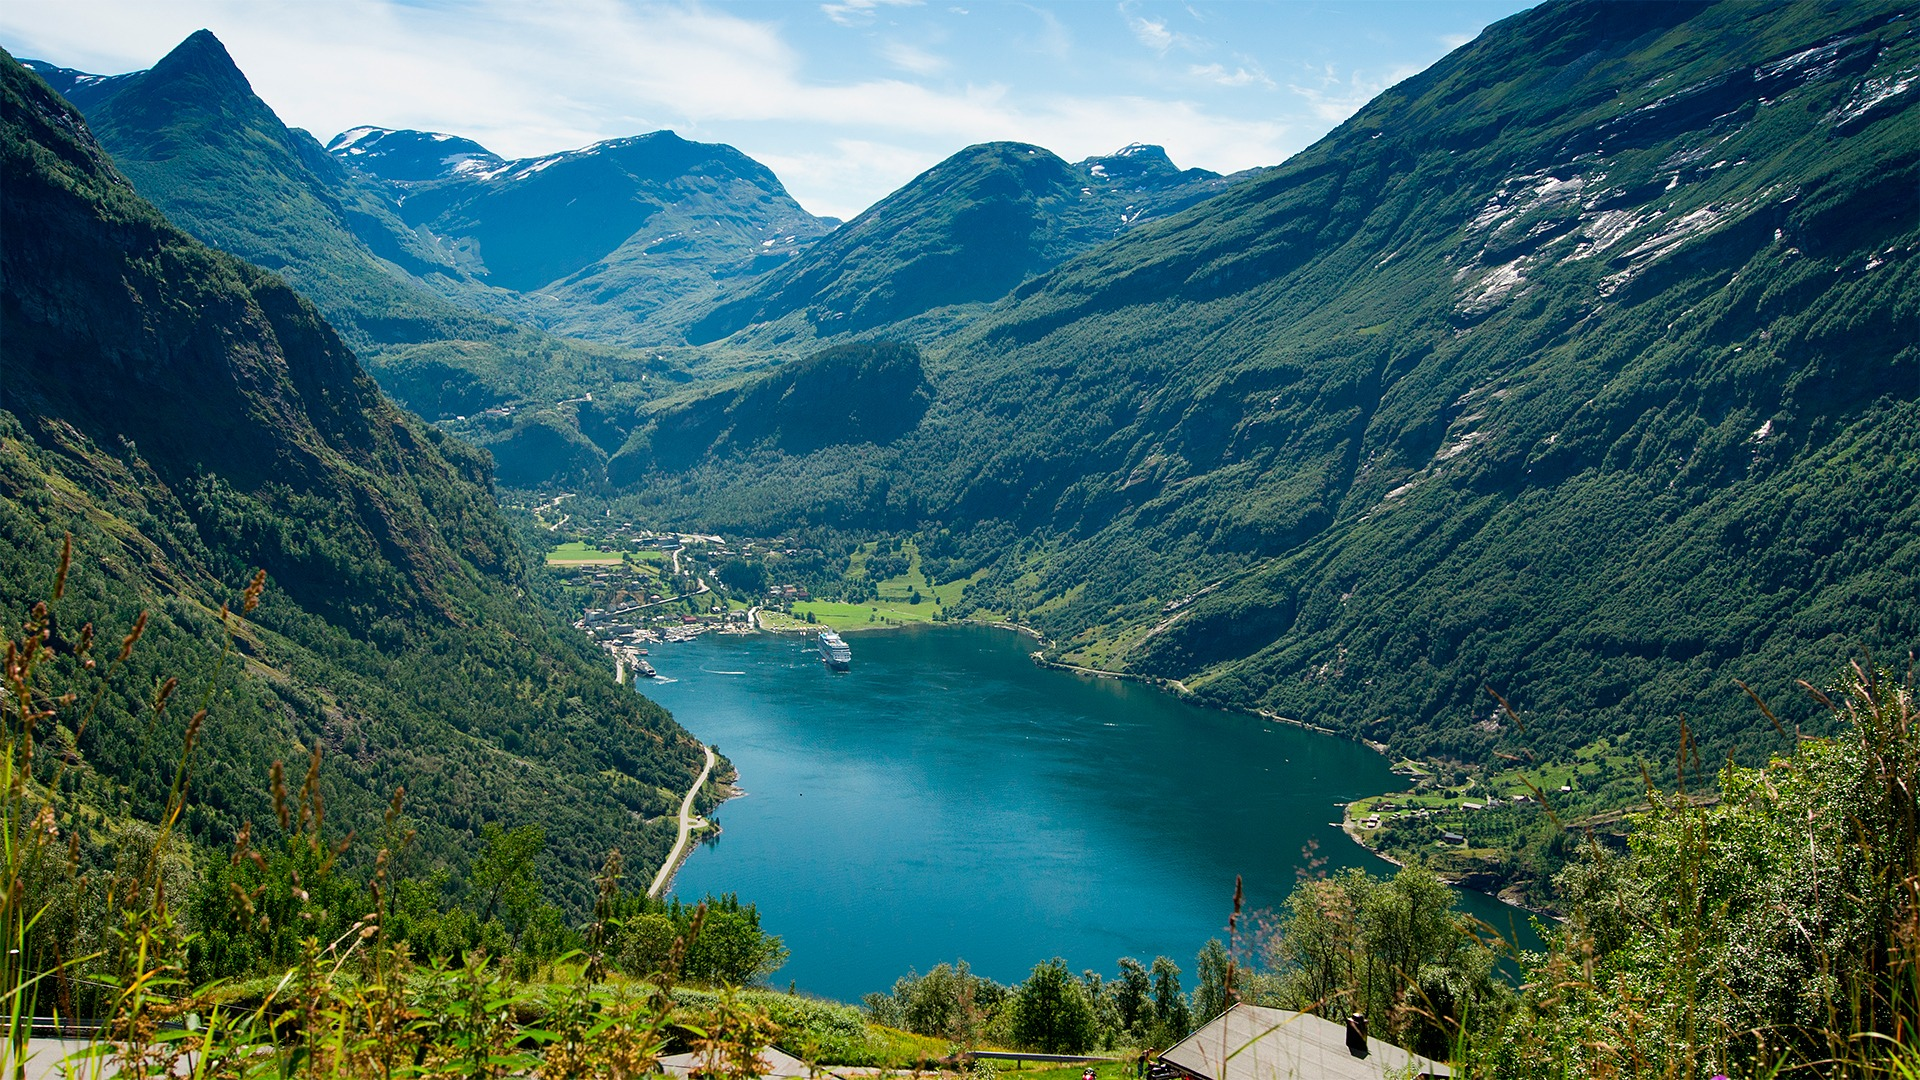 Photo of Geirangerfjord. Geirangerfjord is part of the West Norwegian Fjords area, which is inscribed on the UNESCO World Heritage List. Photo by Ludovic Peron, (CCBY-SA) via Wikimedia Commons